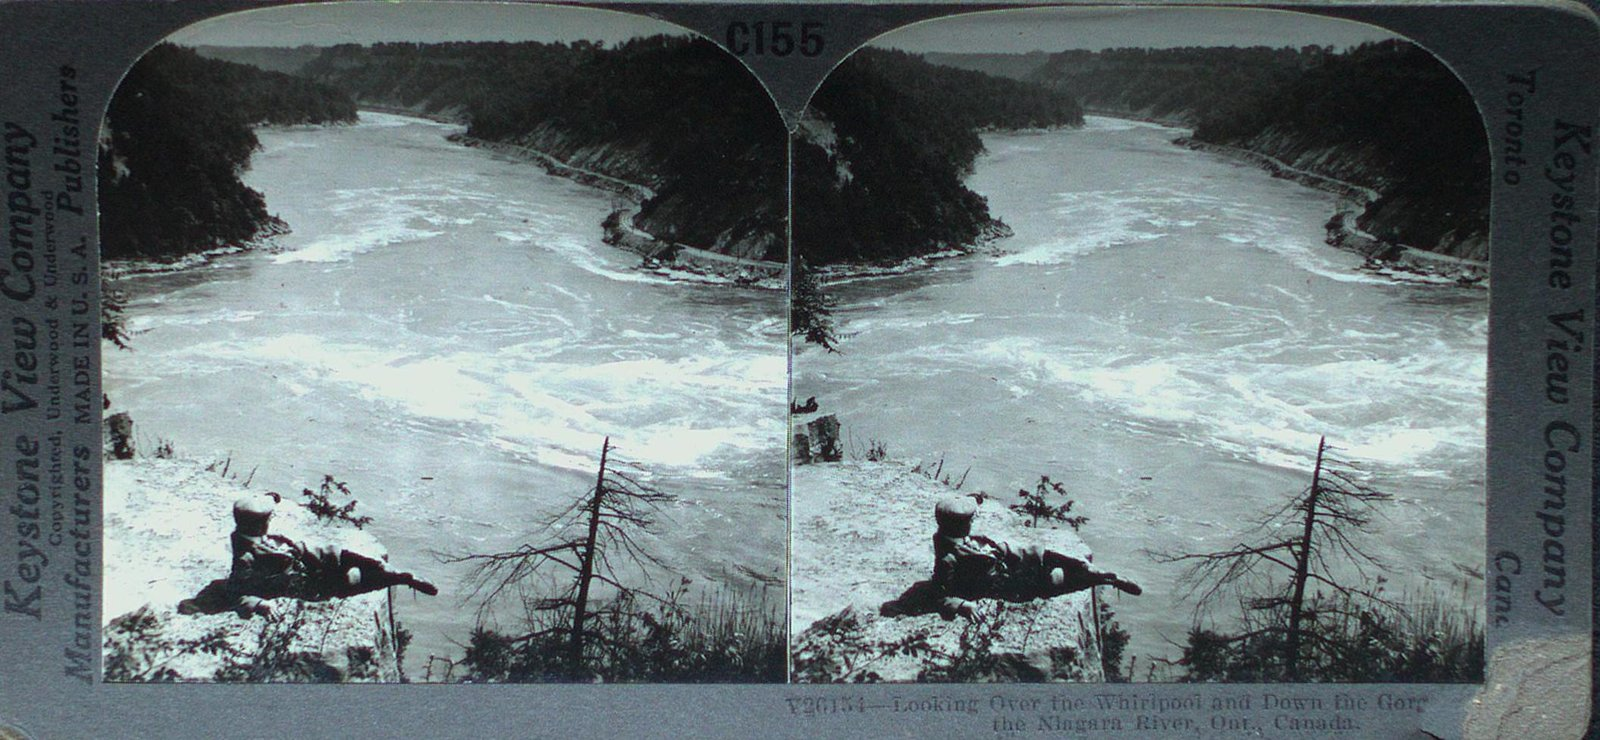 Niagara Gorge and the Niagara Whirlpool